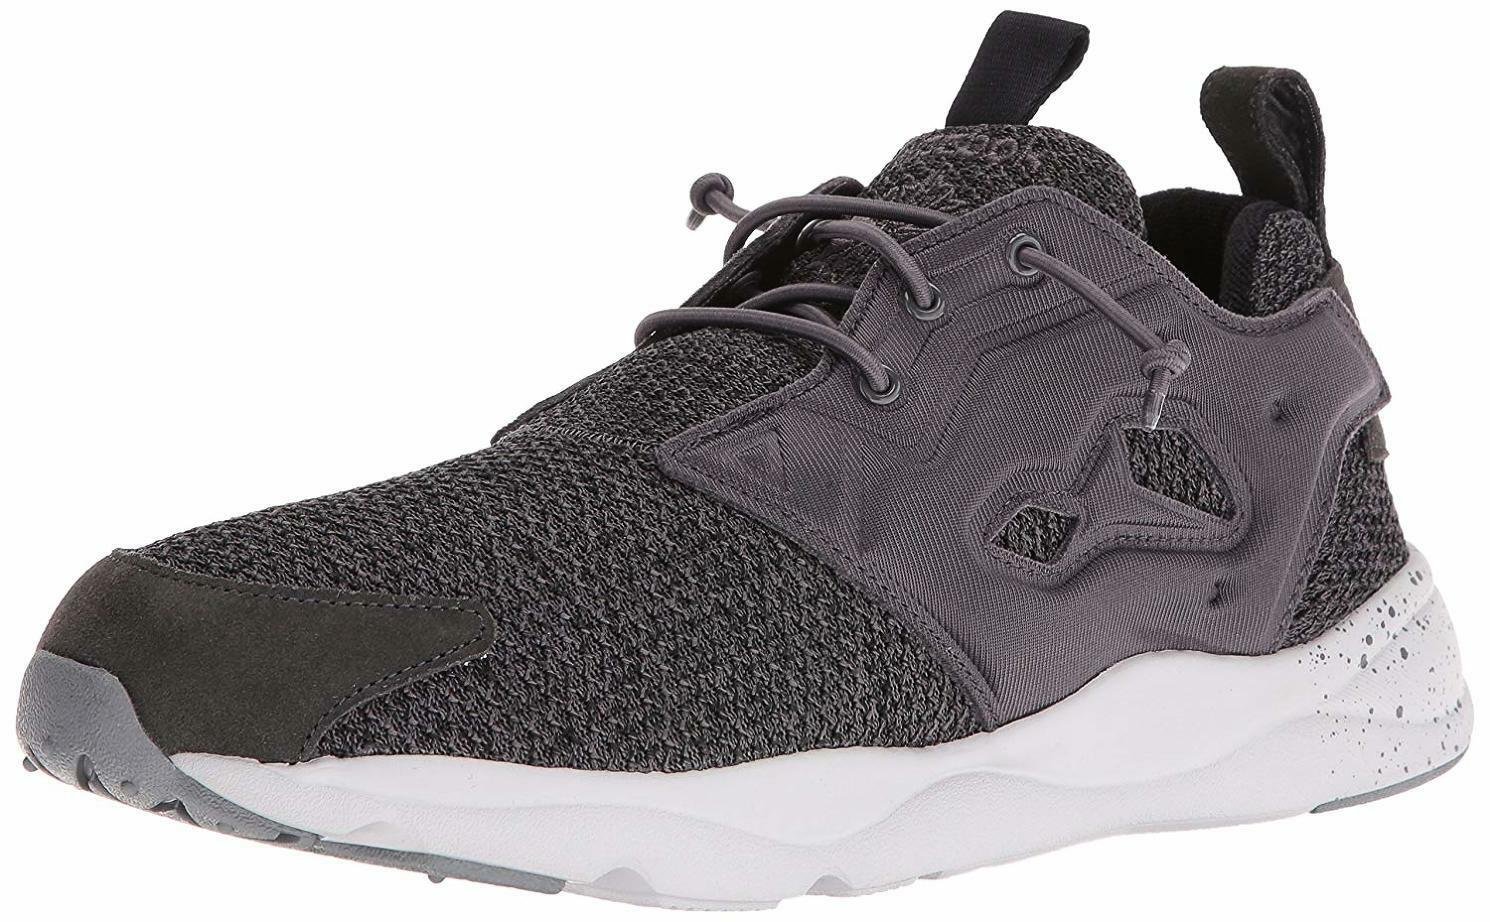 Reebok Men's Furylite GW Fashion Sneaker - Choose SZ color